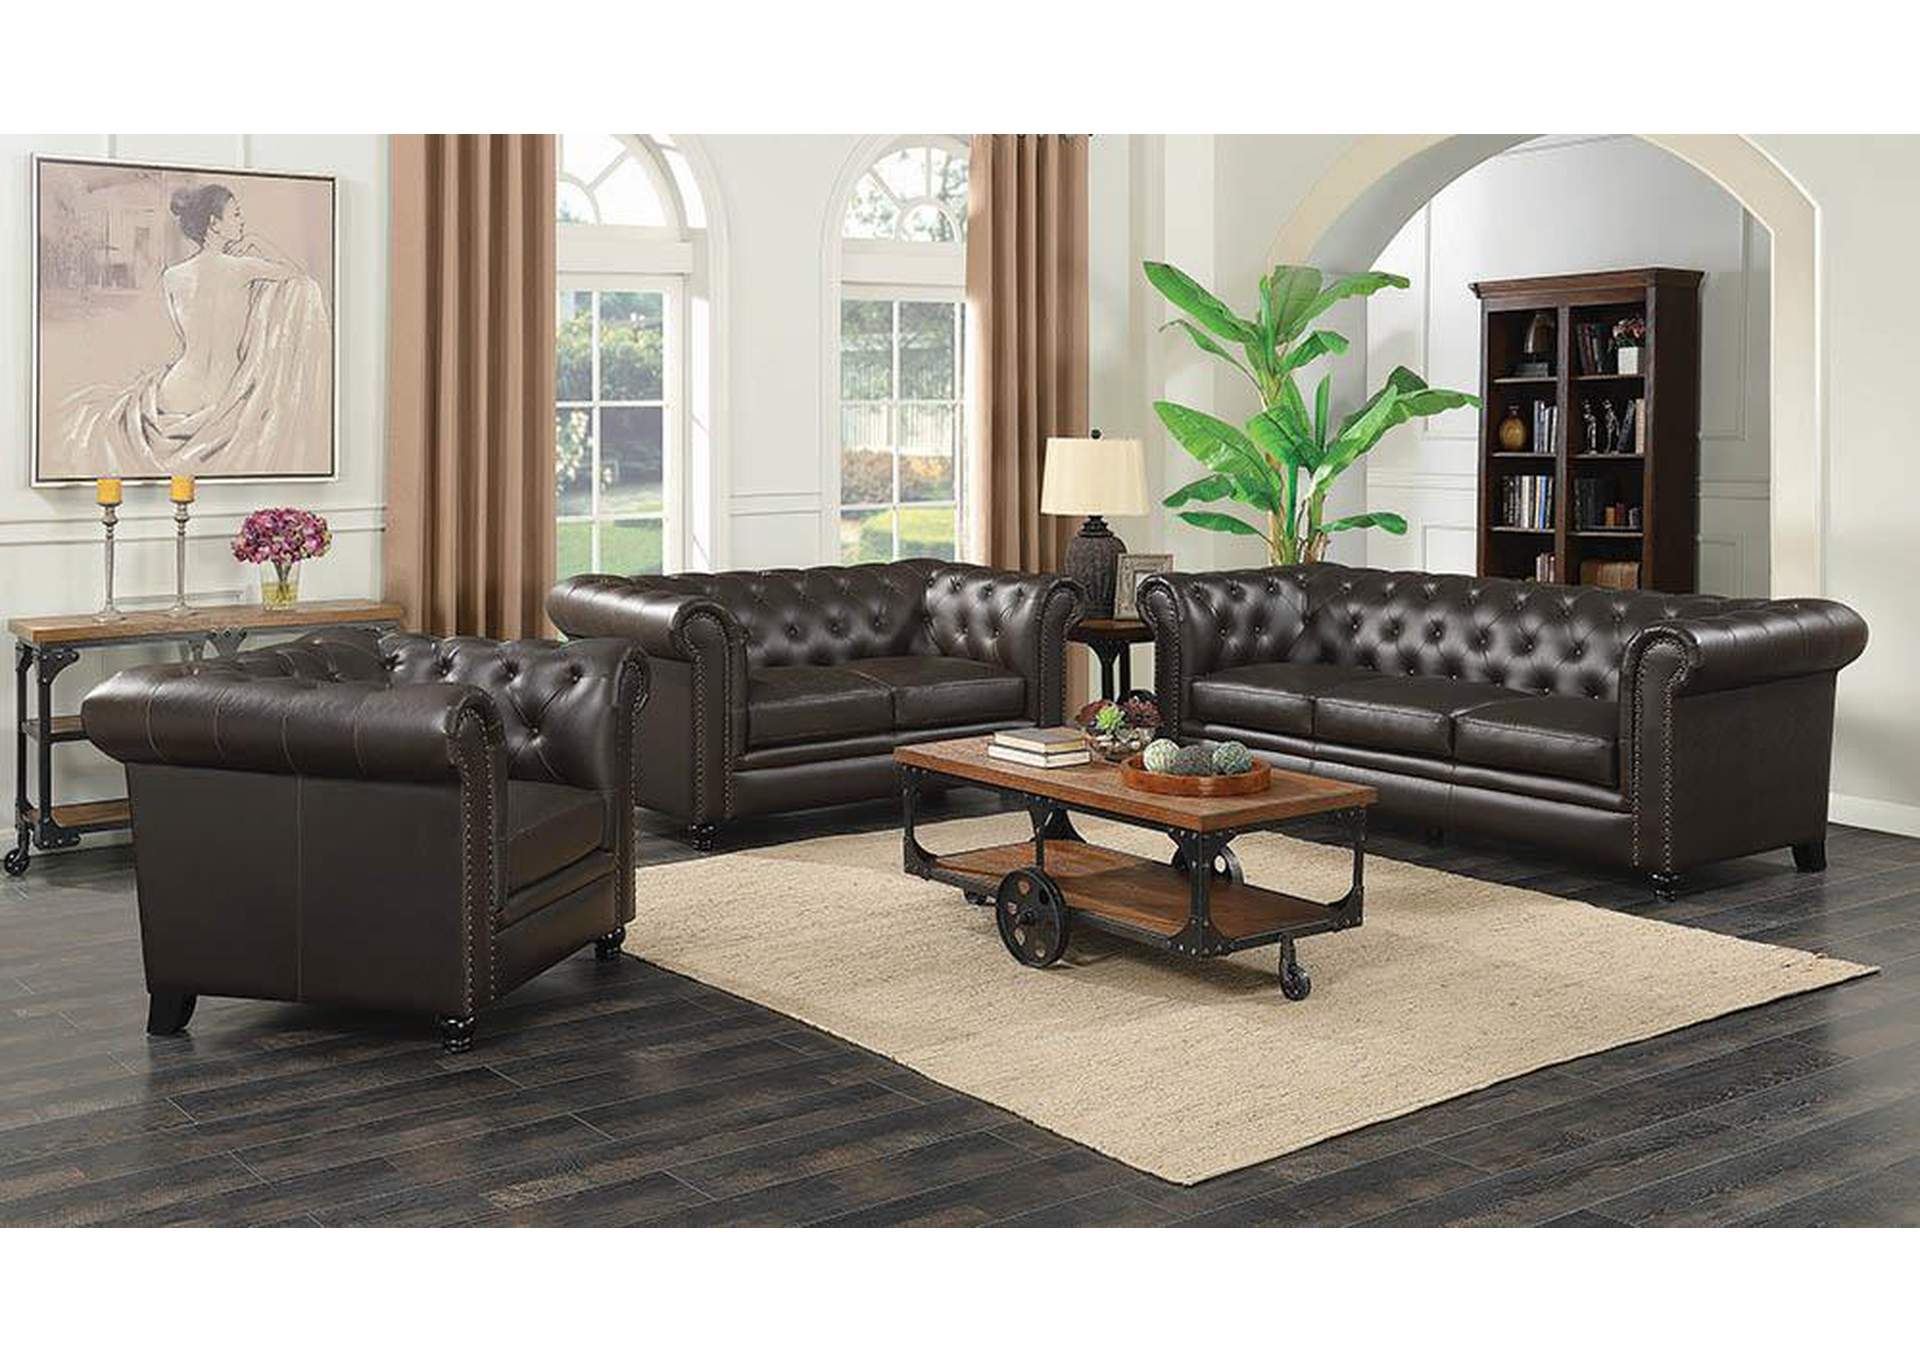 Furniture Outlet Chicago Llc Chicago Il Roy Brown Chair